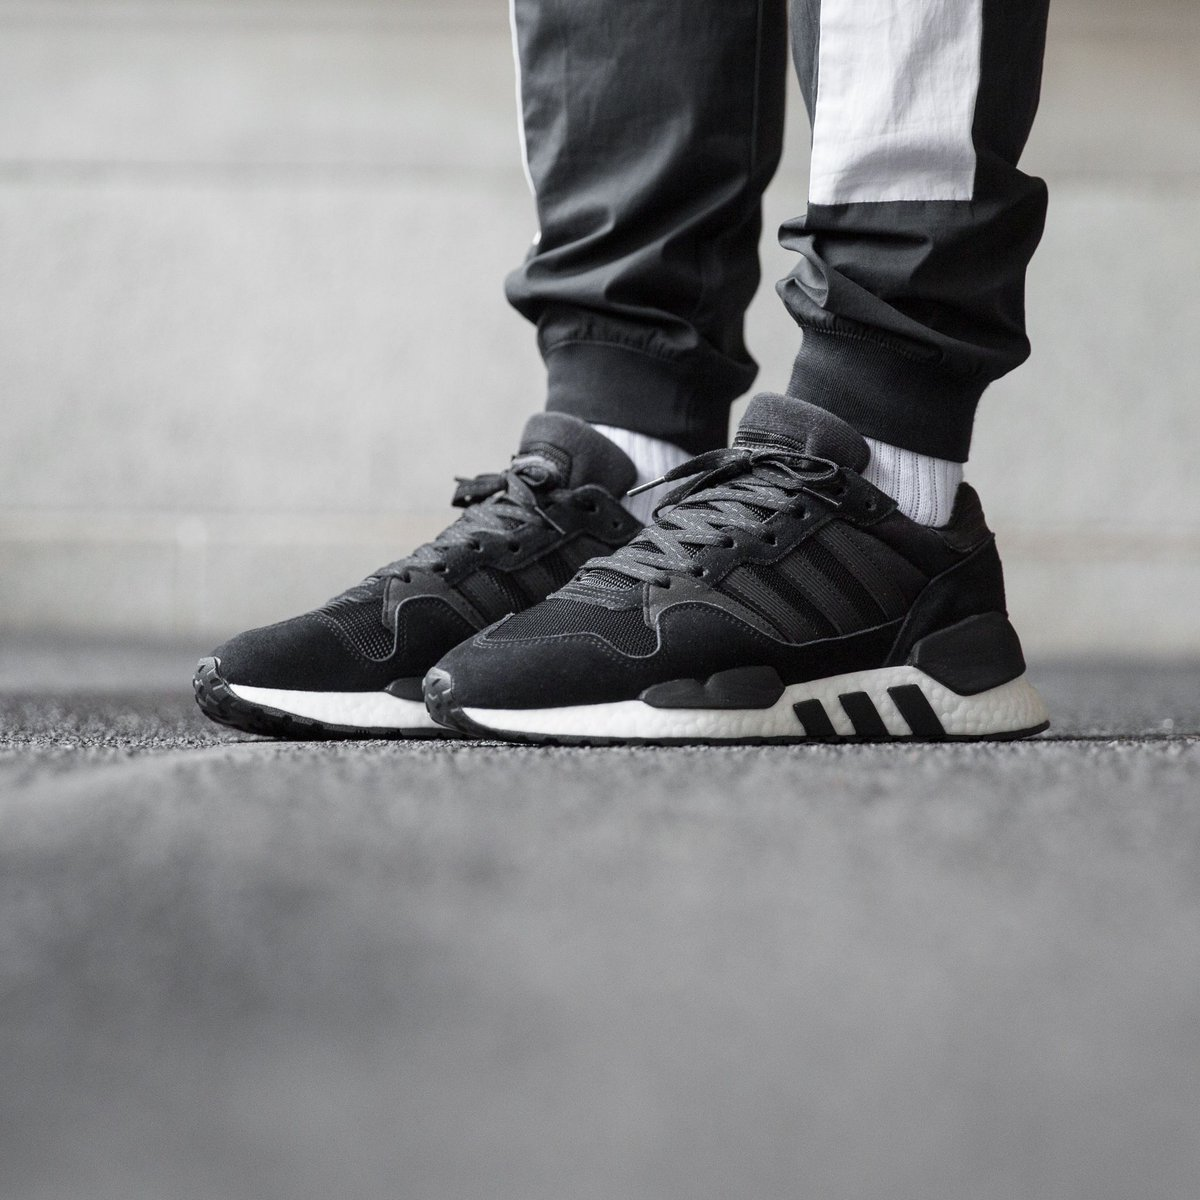 wholesale dealer b3ffb 4e6f3 titoloshop New products on our #sale! 😎 Adidas ZX 930 x EQT ...